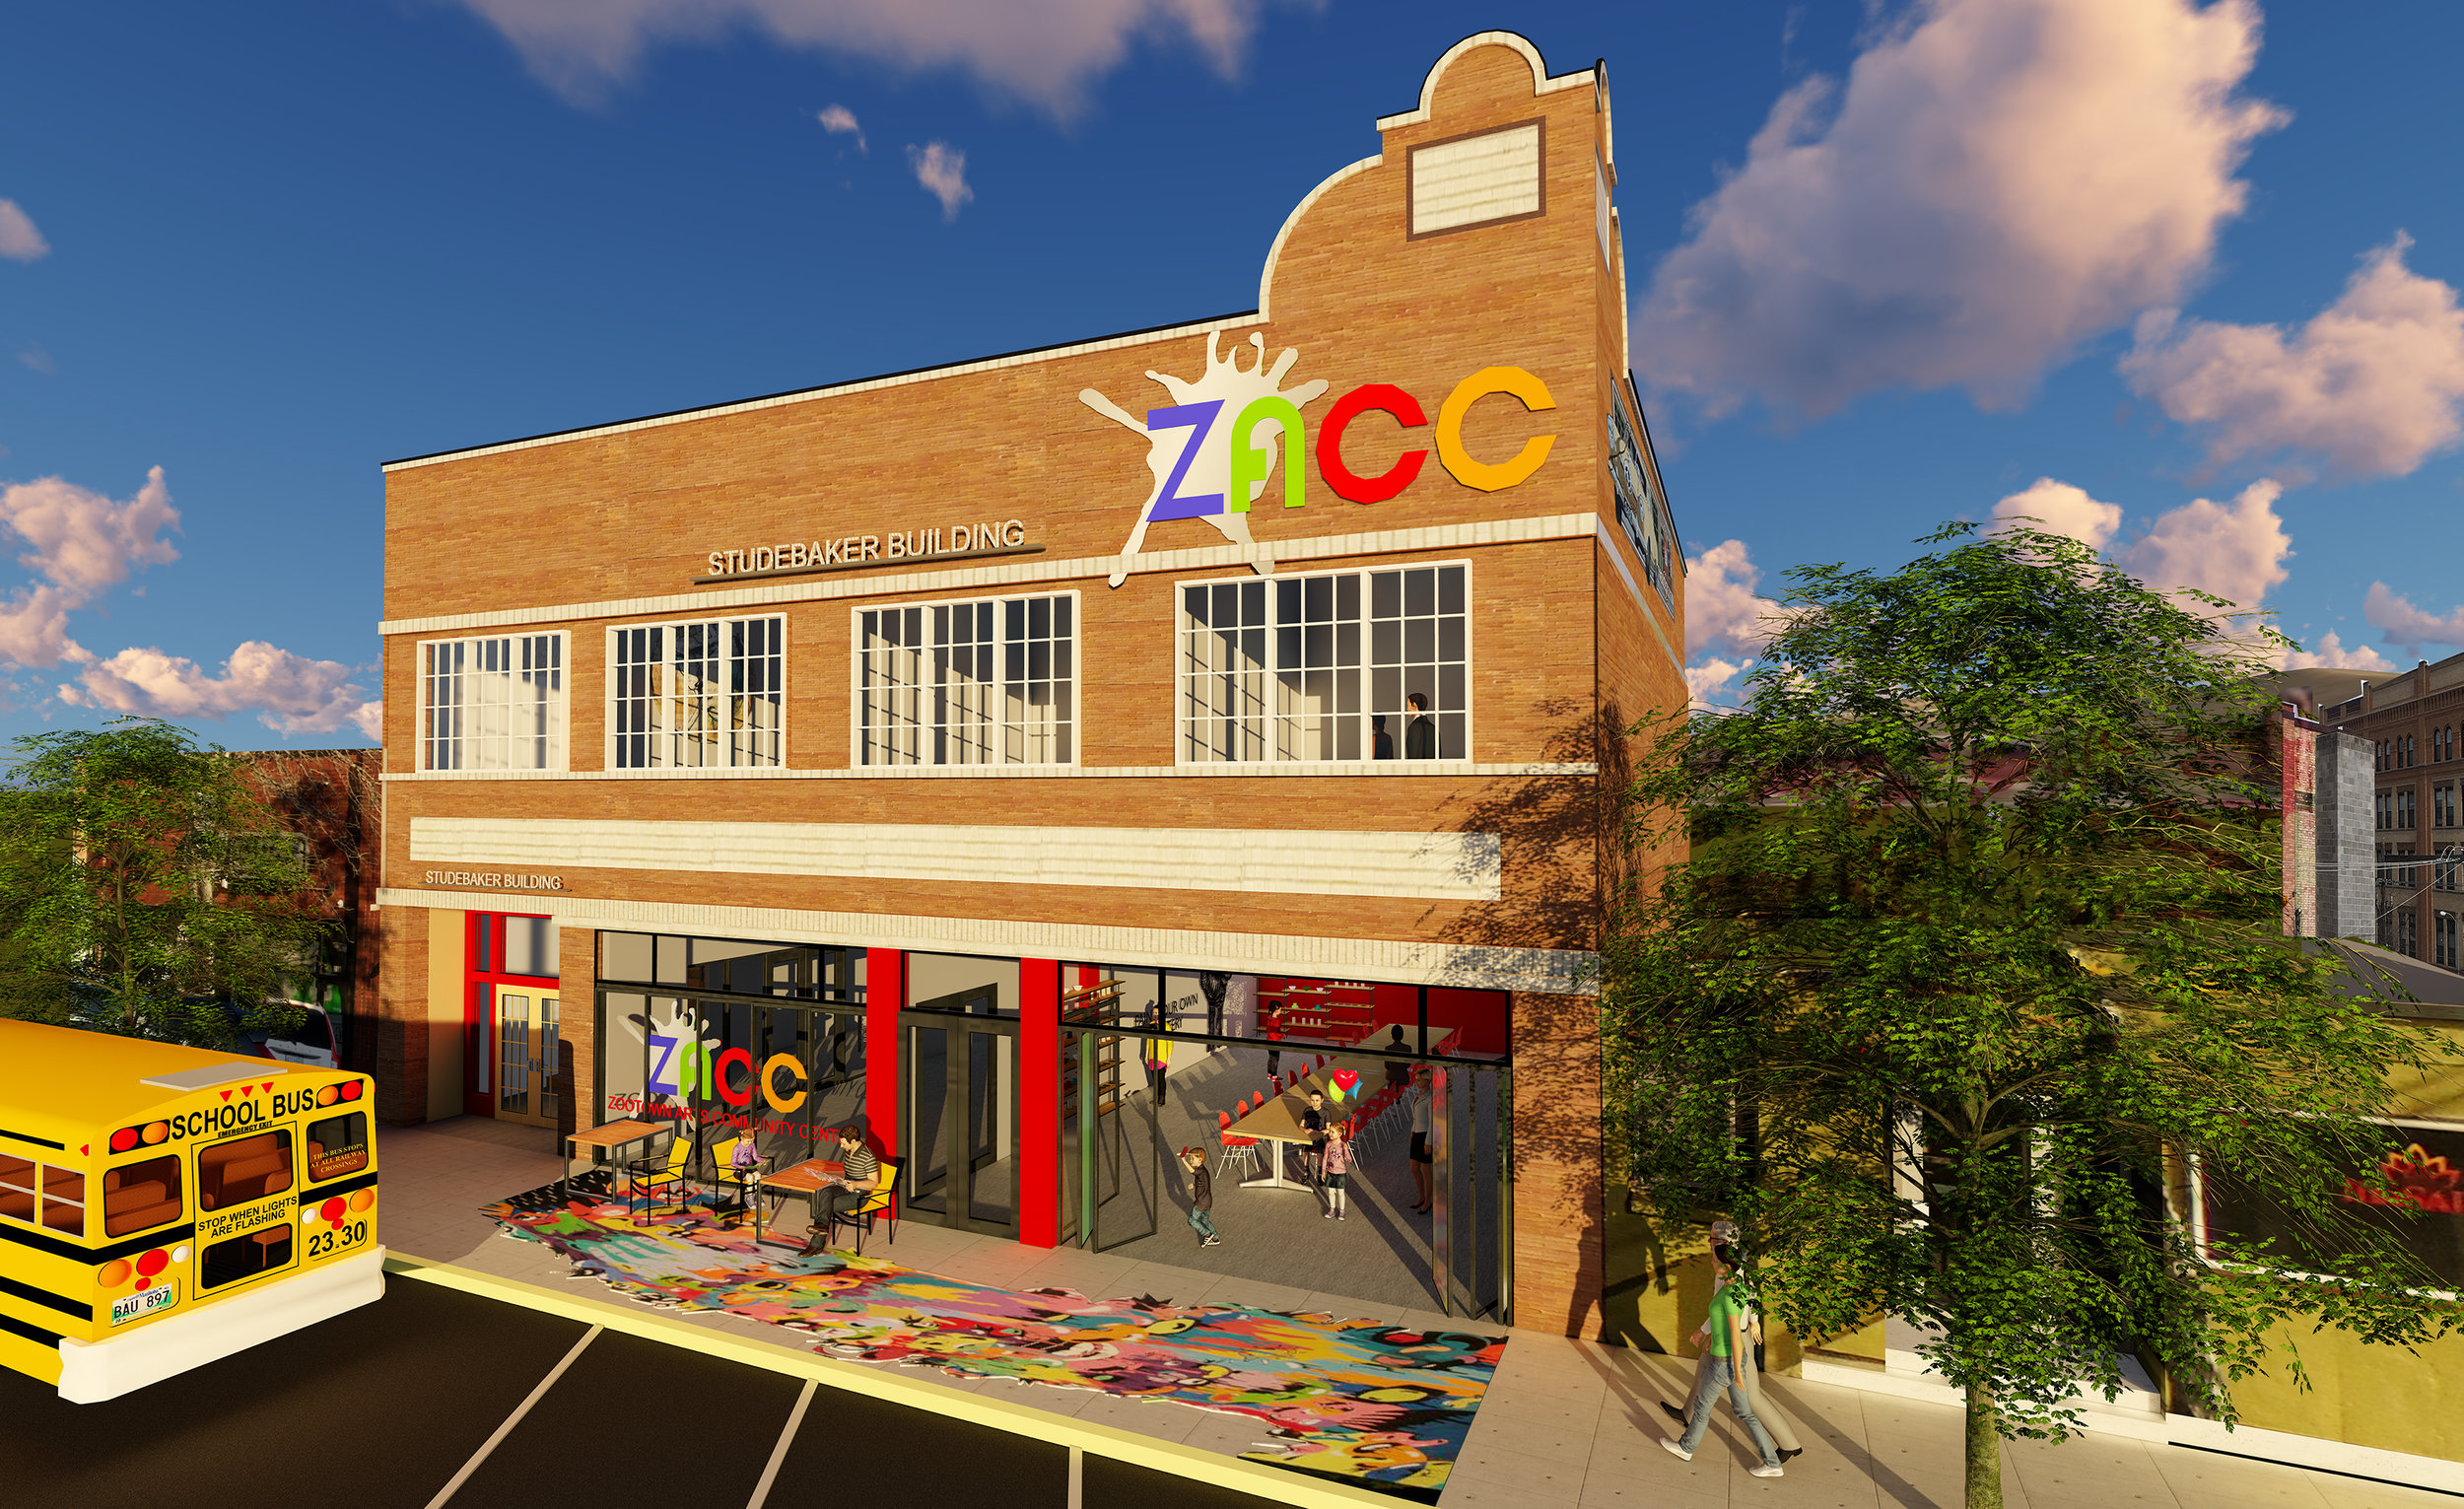 Zootown Arts Community Center Launches $4.25 Million Capital Campaign - Read the Full Article